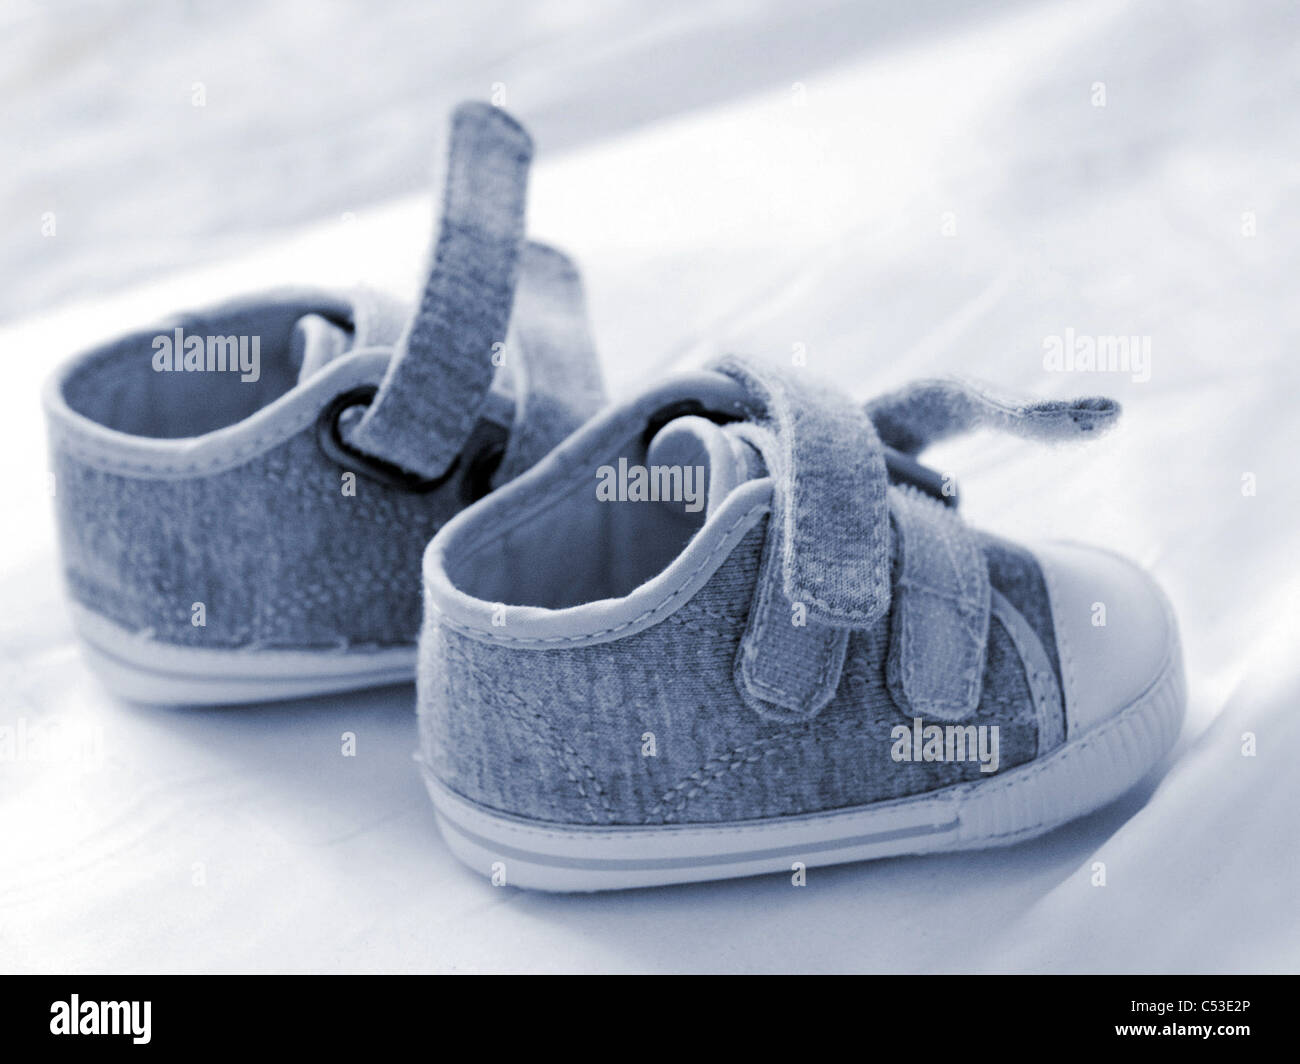 The shoes of a newborn baby boy. - Stock Image